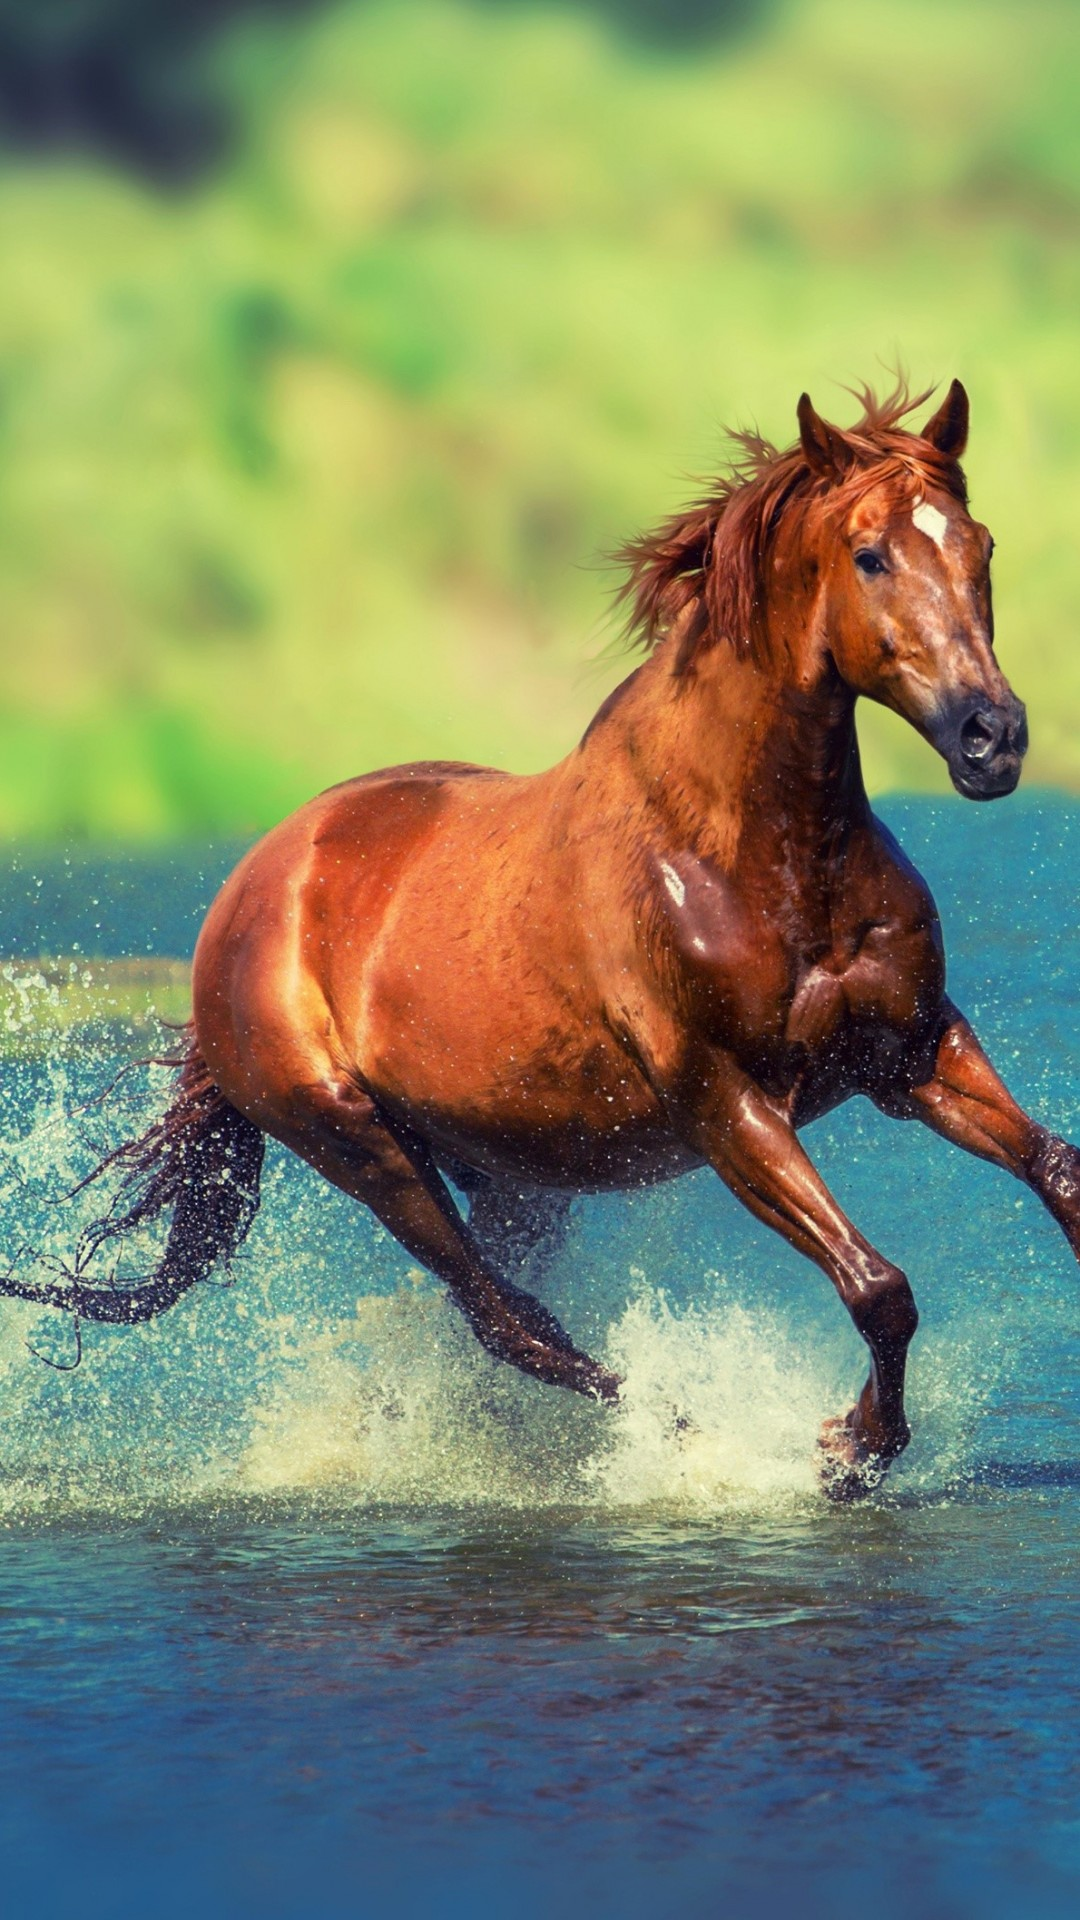 Wallpaper Horse Brown 4k Animals 19776